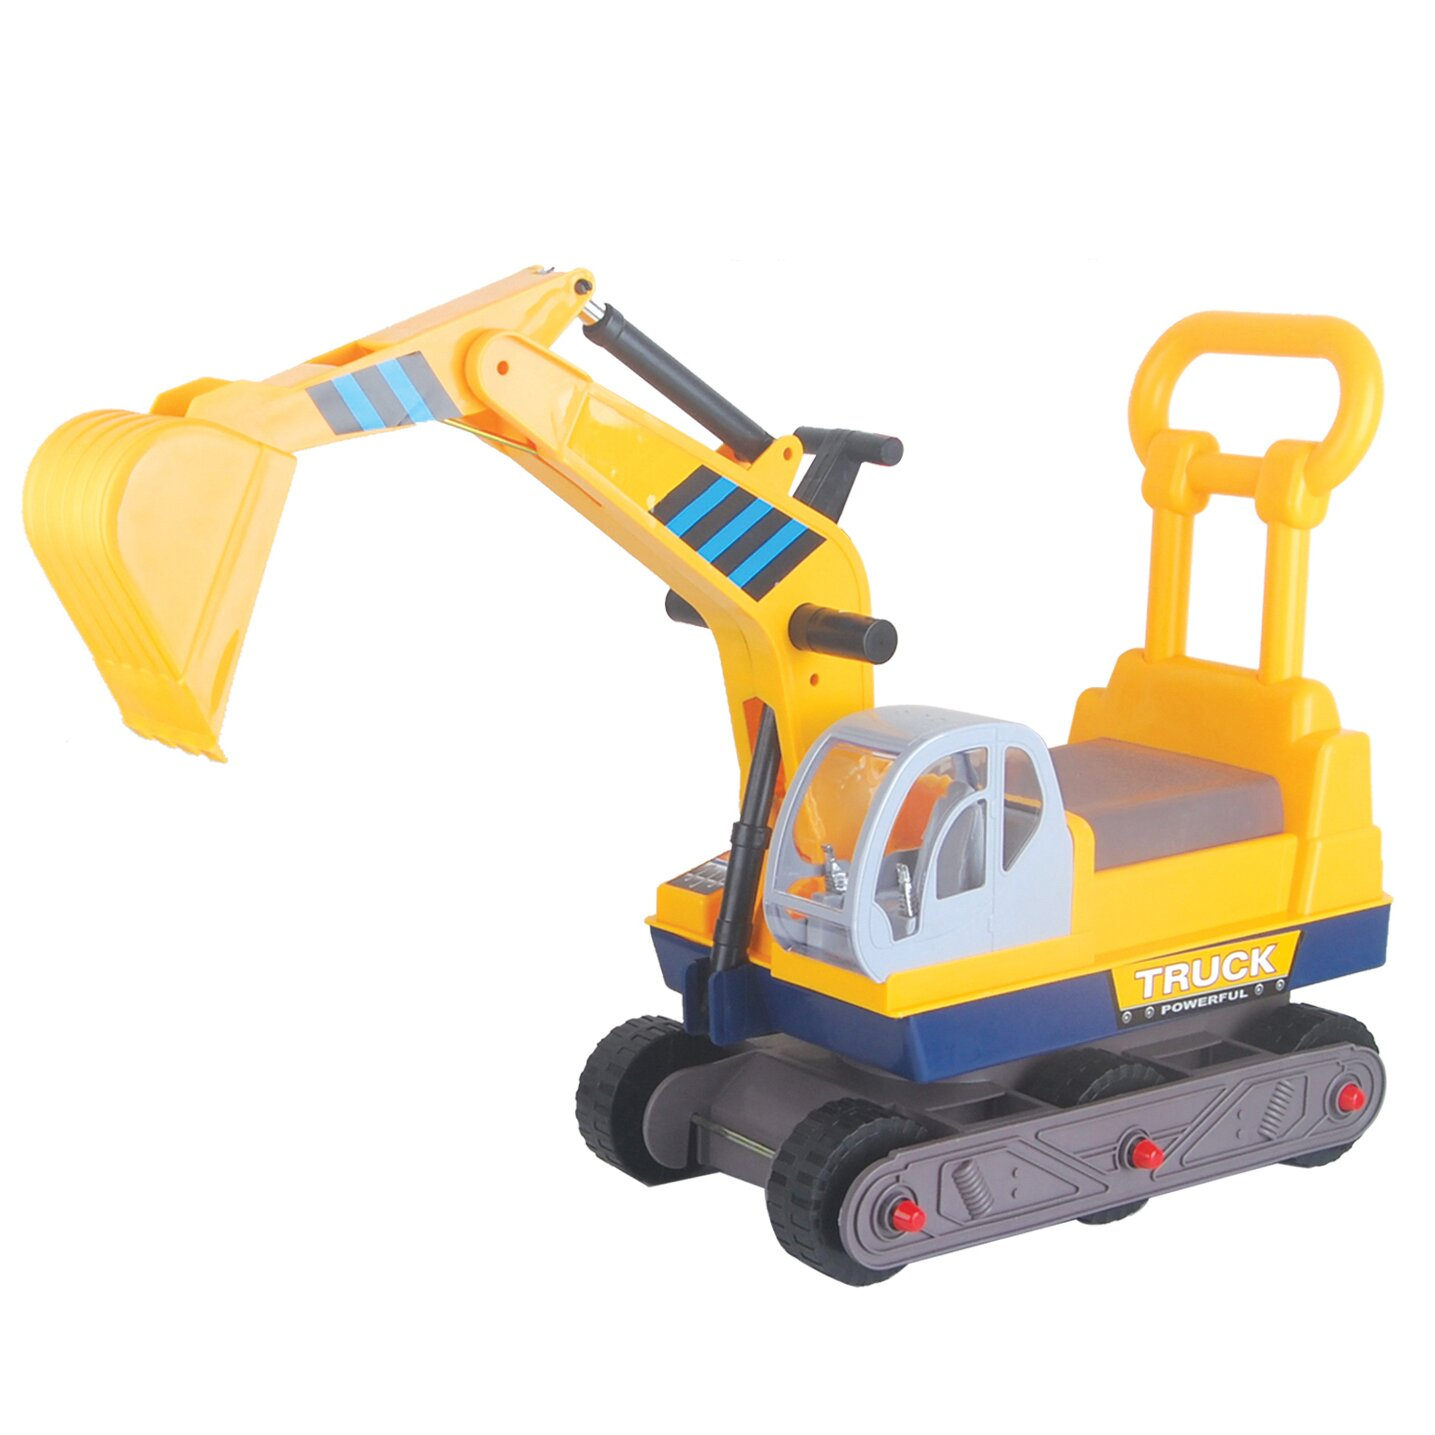 Vroom Rider Ride On 6 Wheel Excavator On Wheels With Back